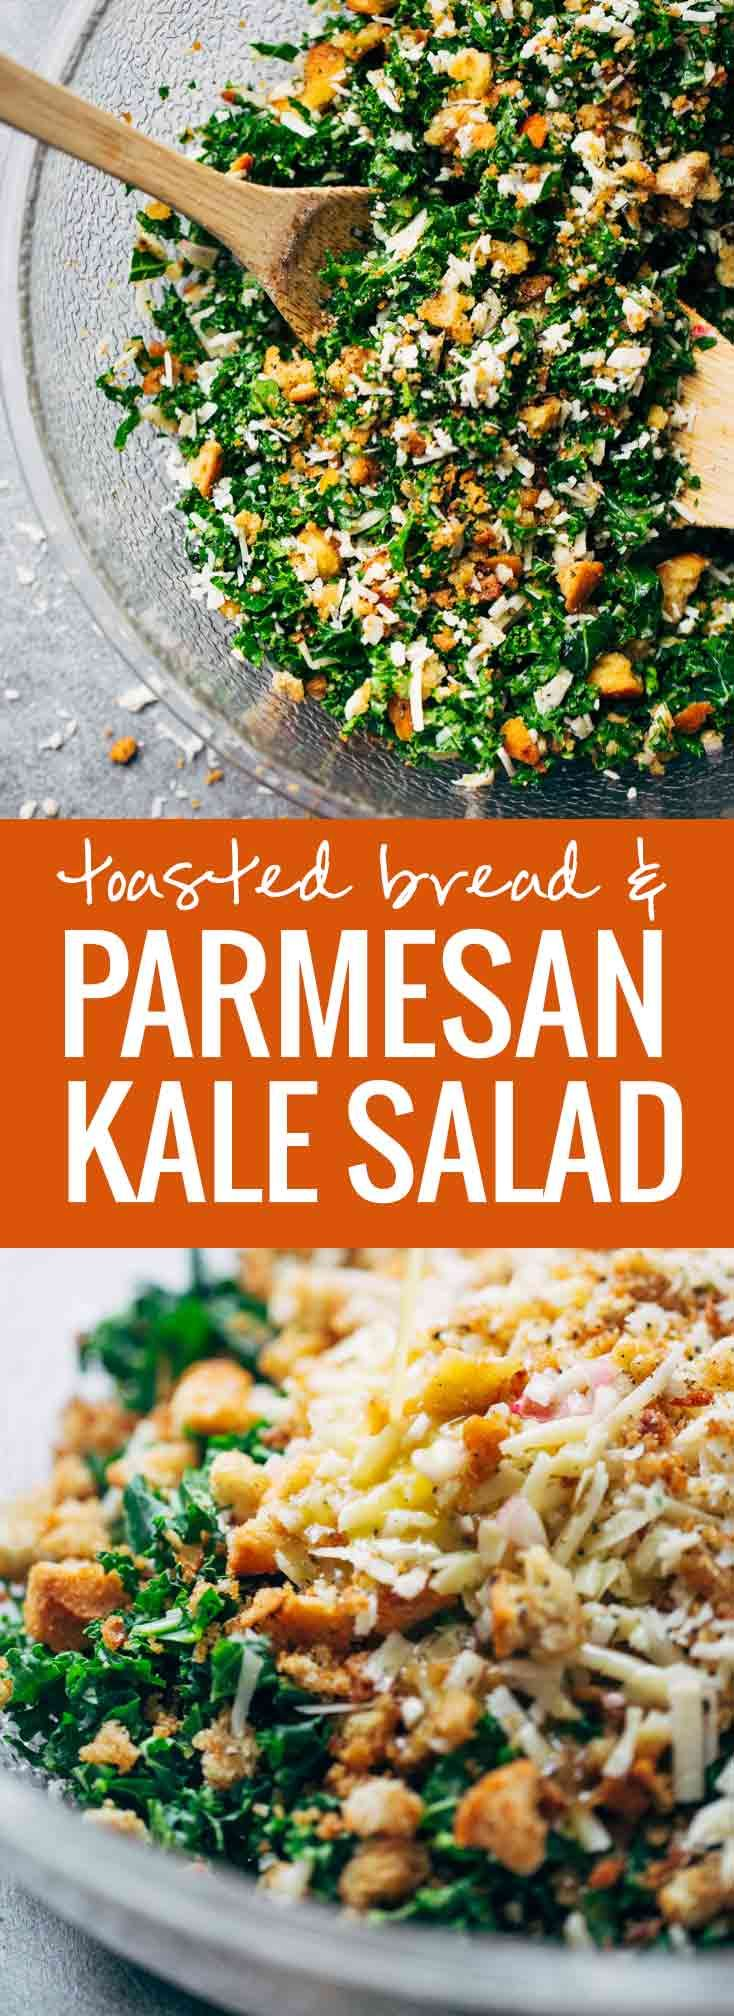 The Best Toasted Bread, Parmesan, and Kale Salad tossed in a tangy shallot, lemon, and olive oil dressing! YUM! (scheduled via http://www.tailwindapp.com?utm_source=pinterest&utm_medium=twpin&utm_content=post964583&utm_campaign=scheduler_attribution)